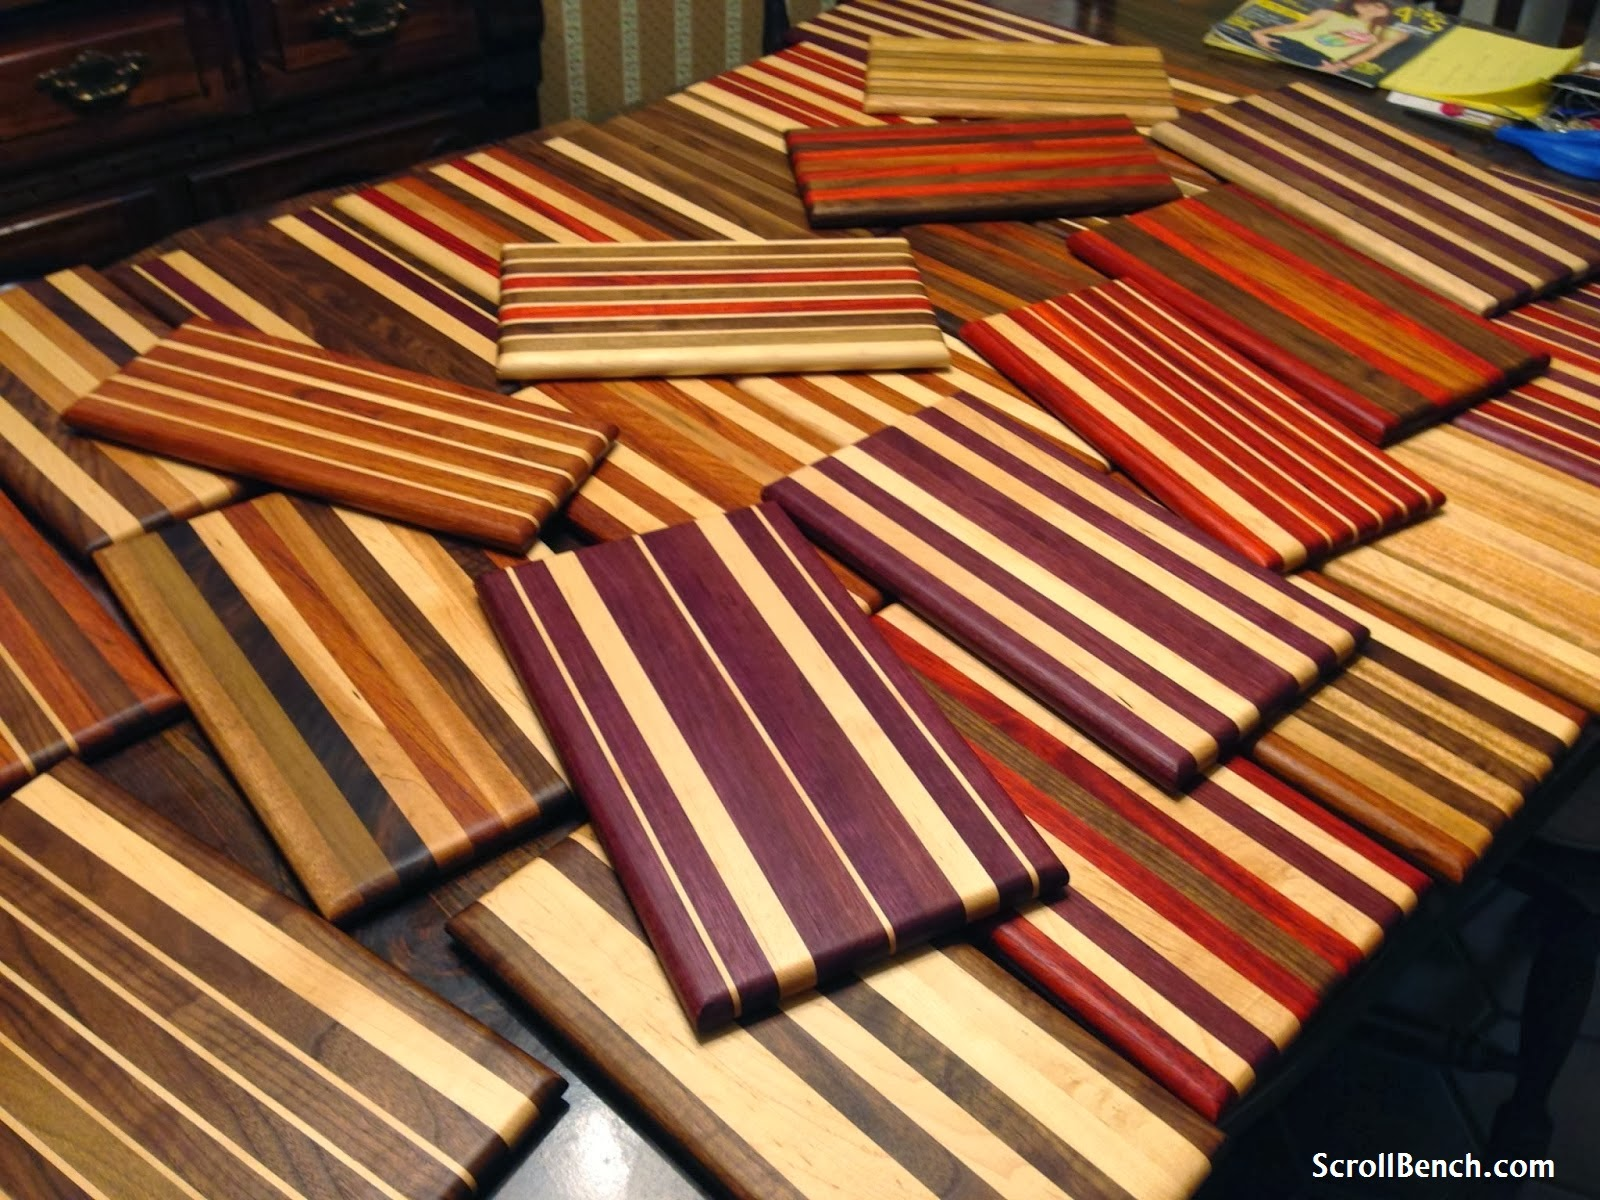 Scroll bench making of exotic hardwood cutting boards